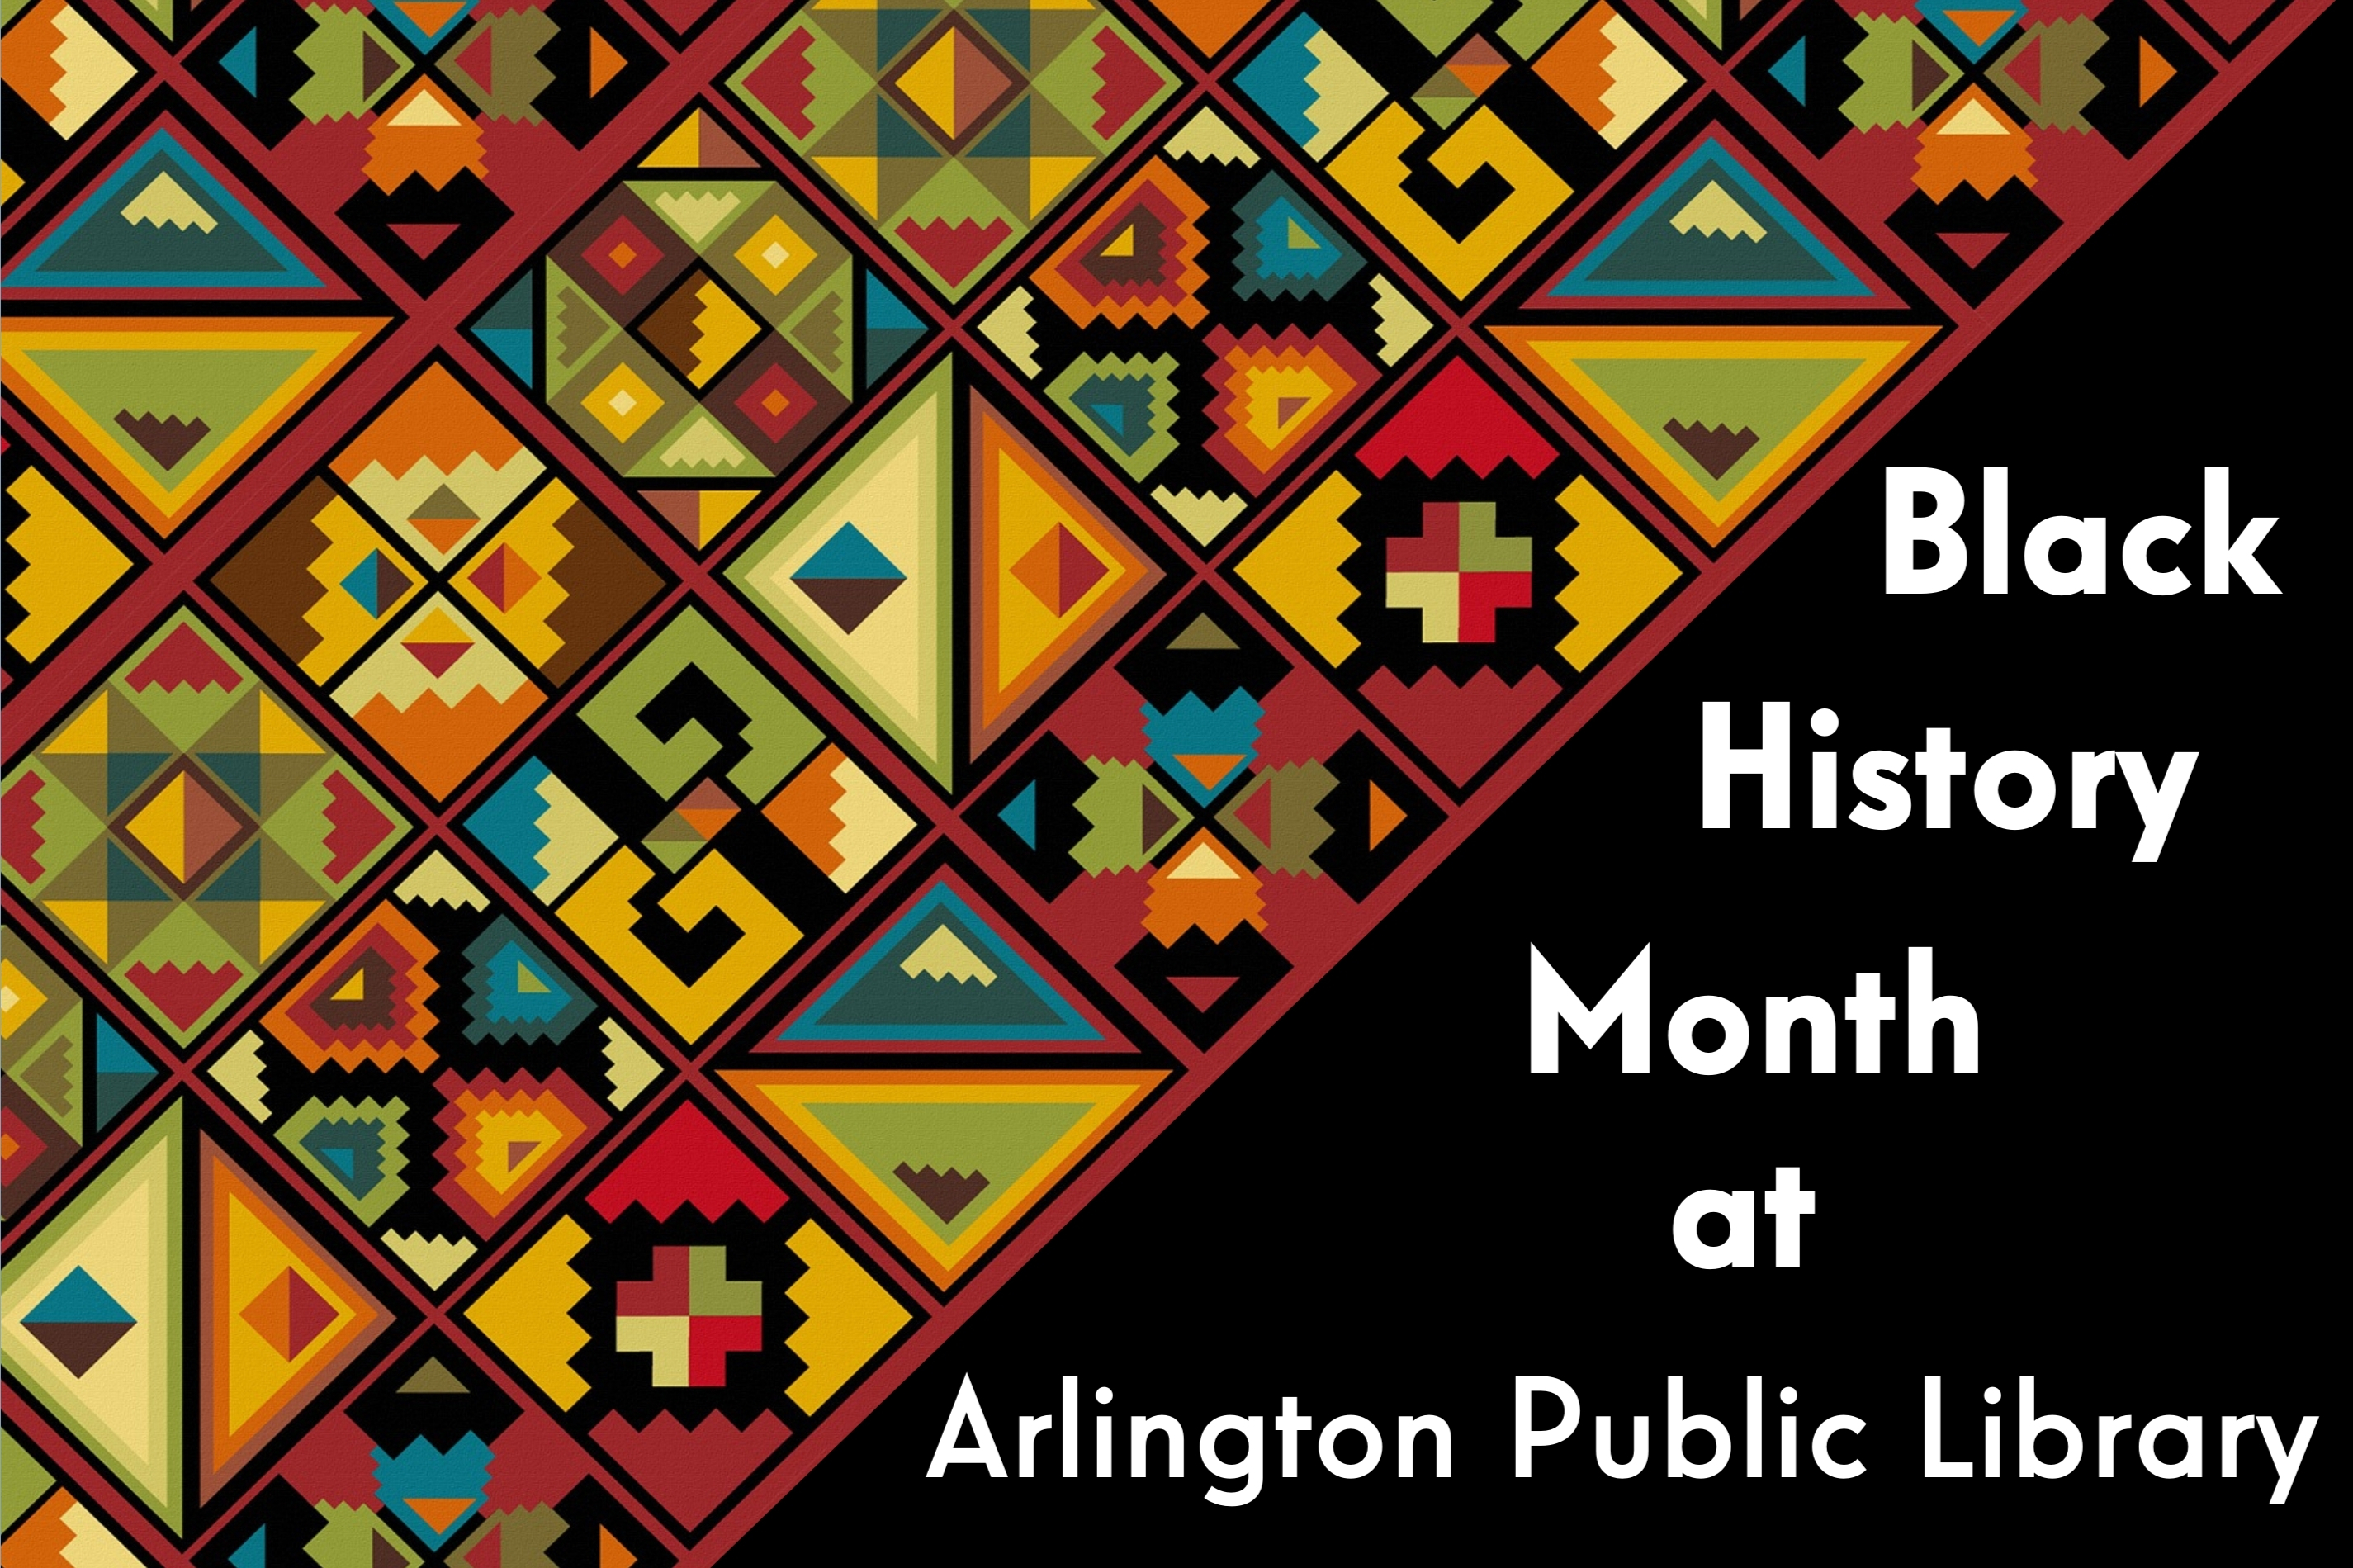 Celebrate Black History Month with Variety of Programs